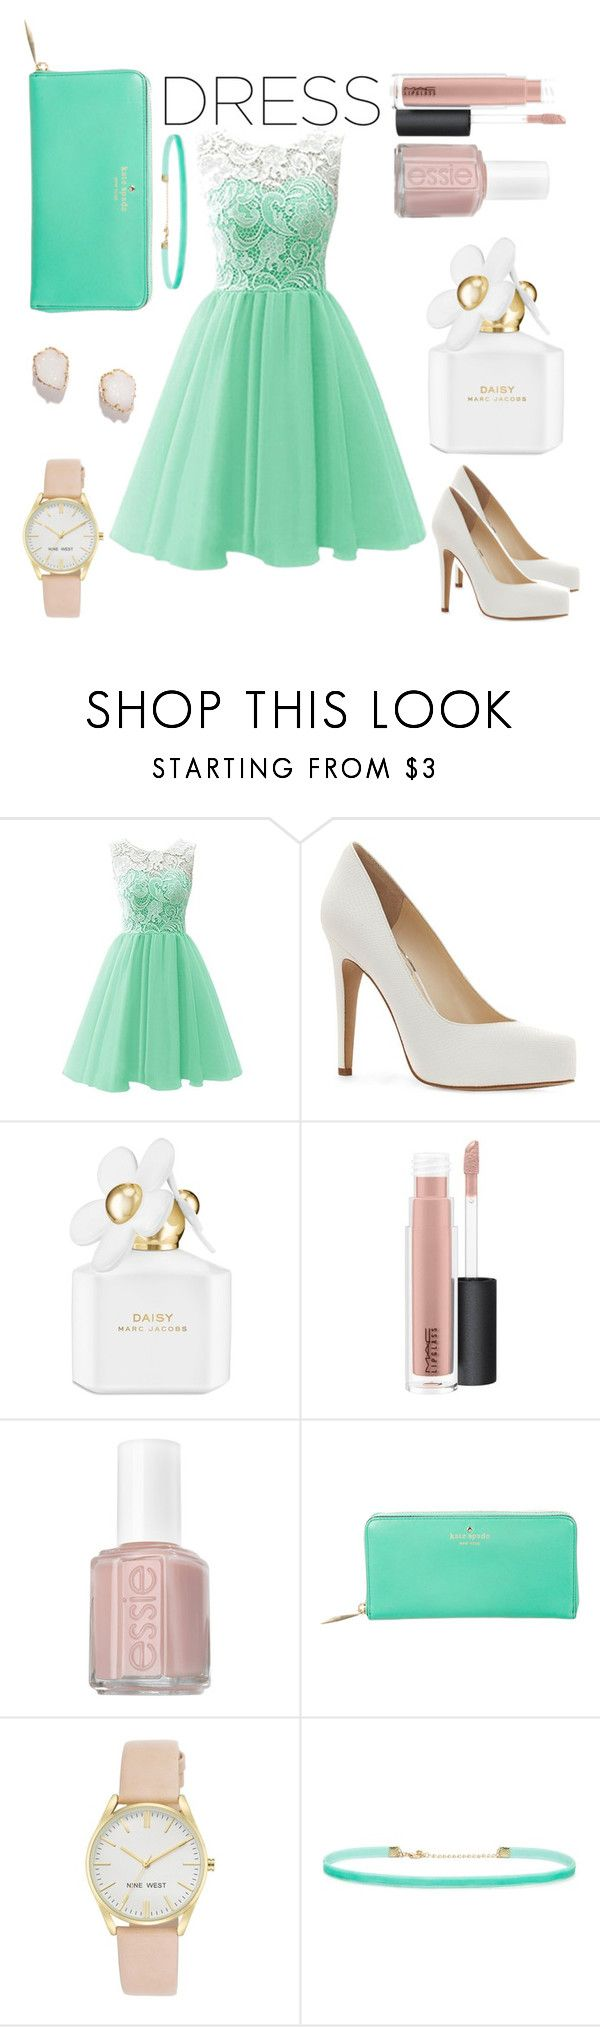 """""""DreamDress♡"""" by annadeiman ❤ liked on Polyvore featuring Jessica Simpson, Marc Jacobs, MAC Cosmetics, Essie, Kate Spade, Nine West, Forever 21 and Kendra Scott"""